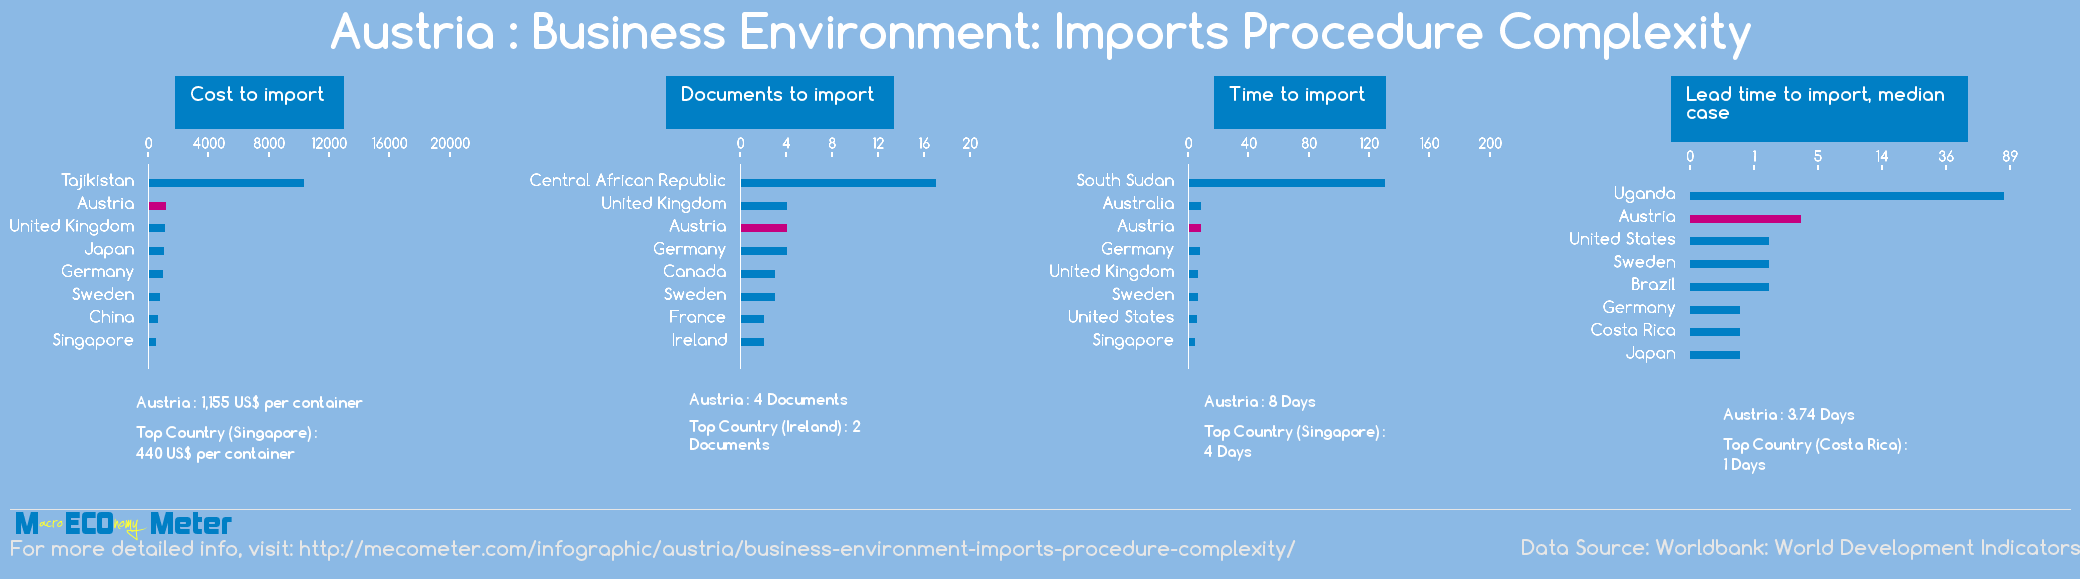 Austria : Business Environment: Imports Procedure Complexity